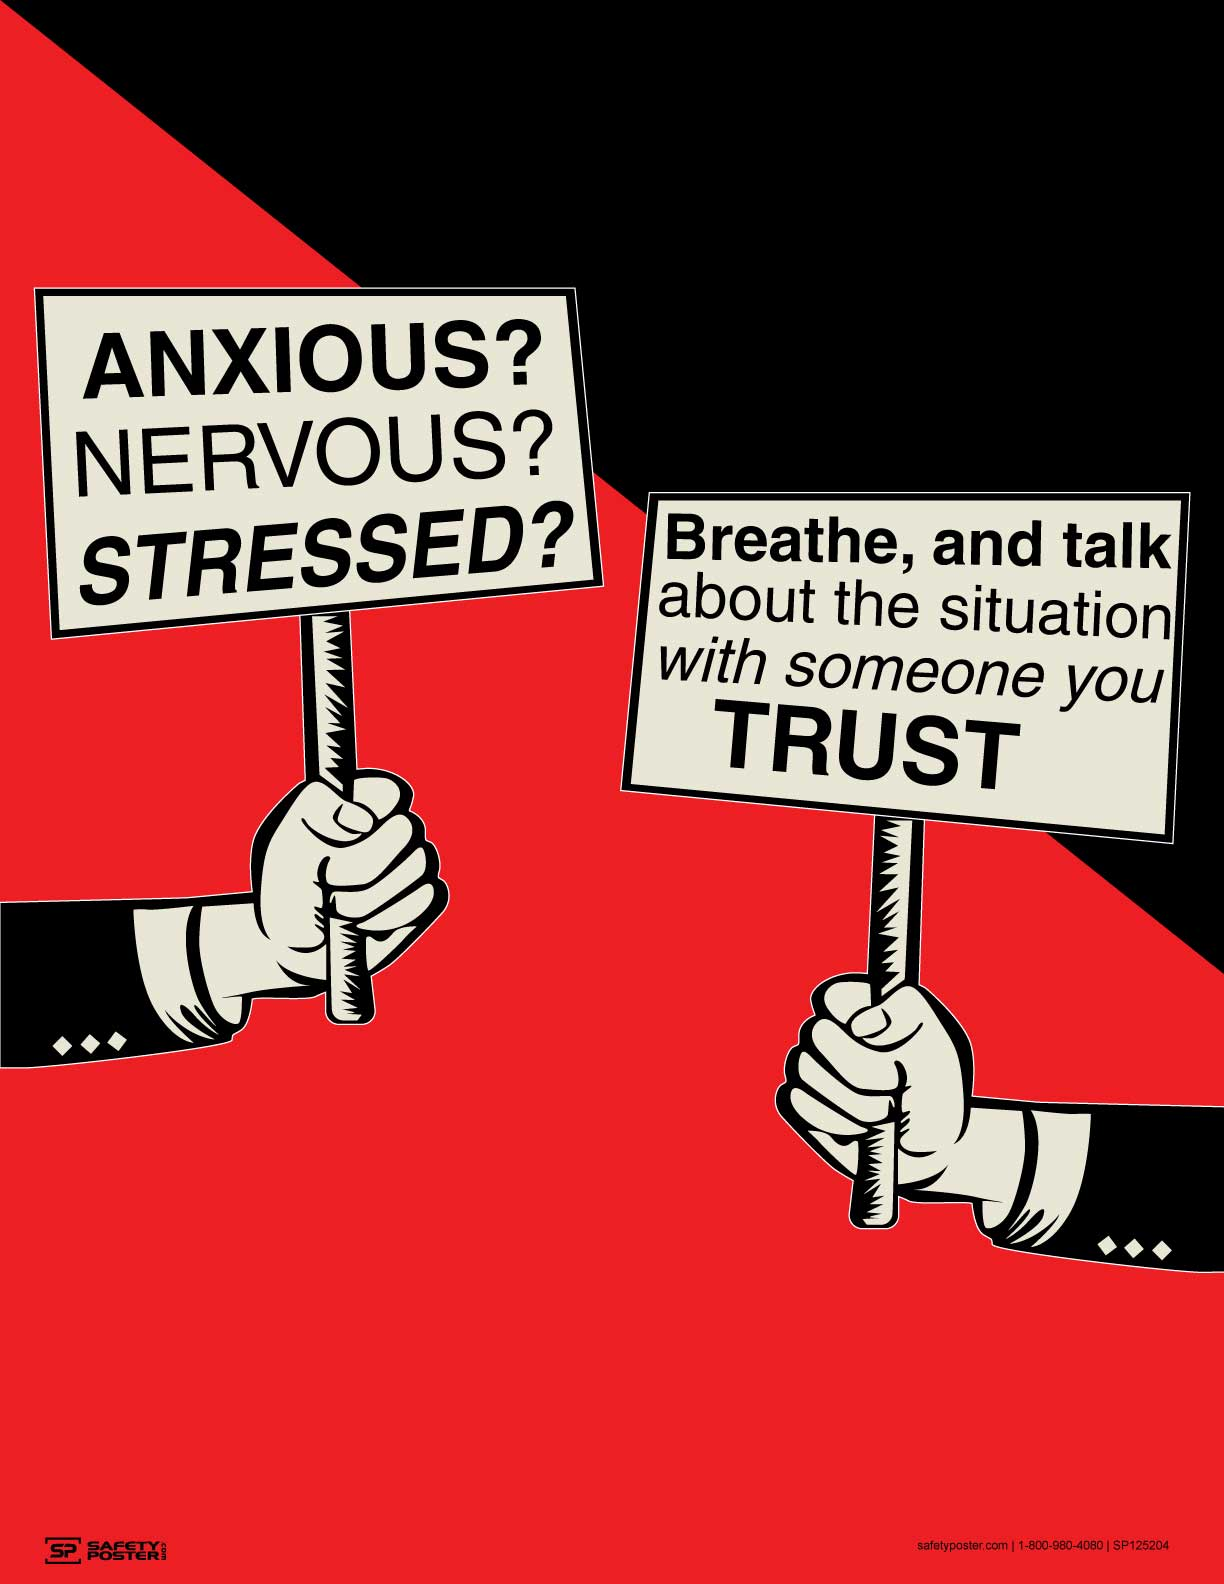 Anxious? Nervous? Stressed? - Safety Poster